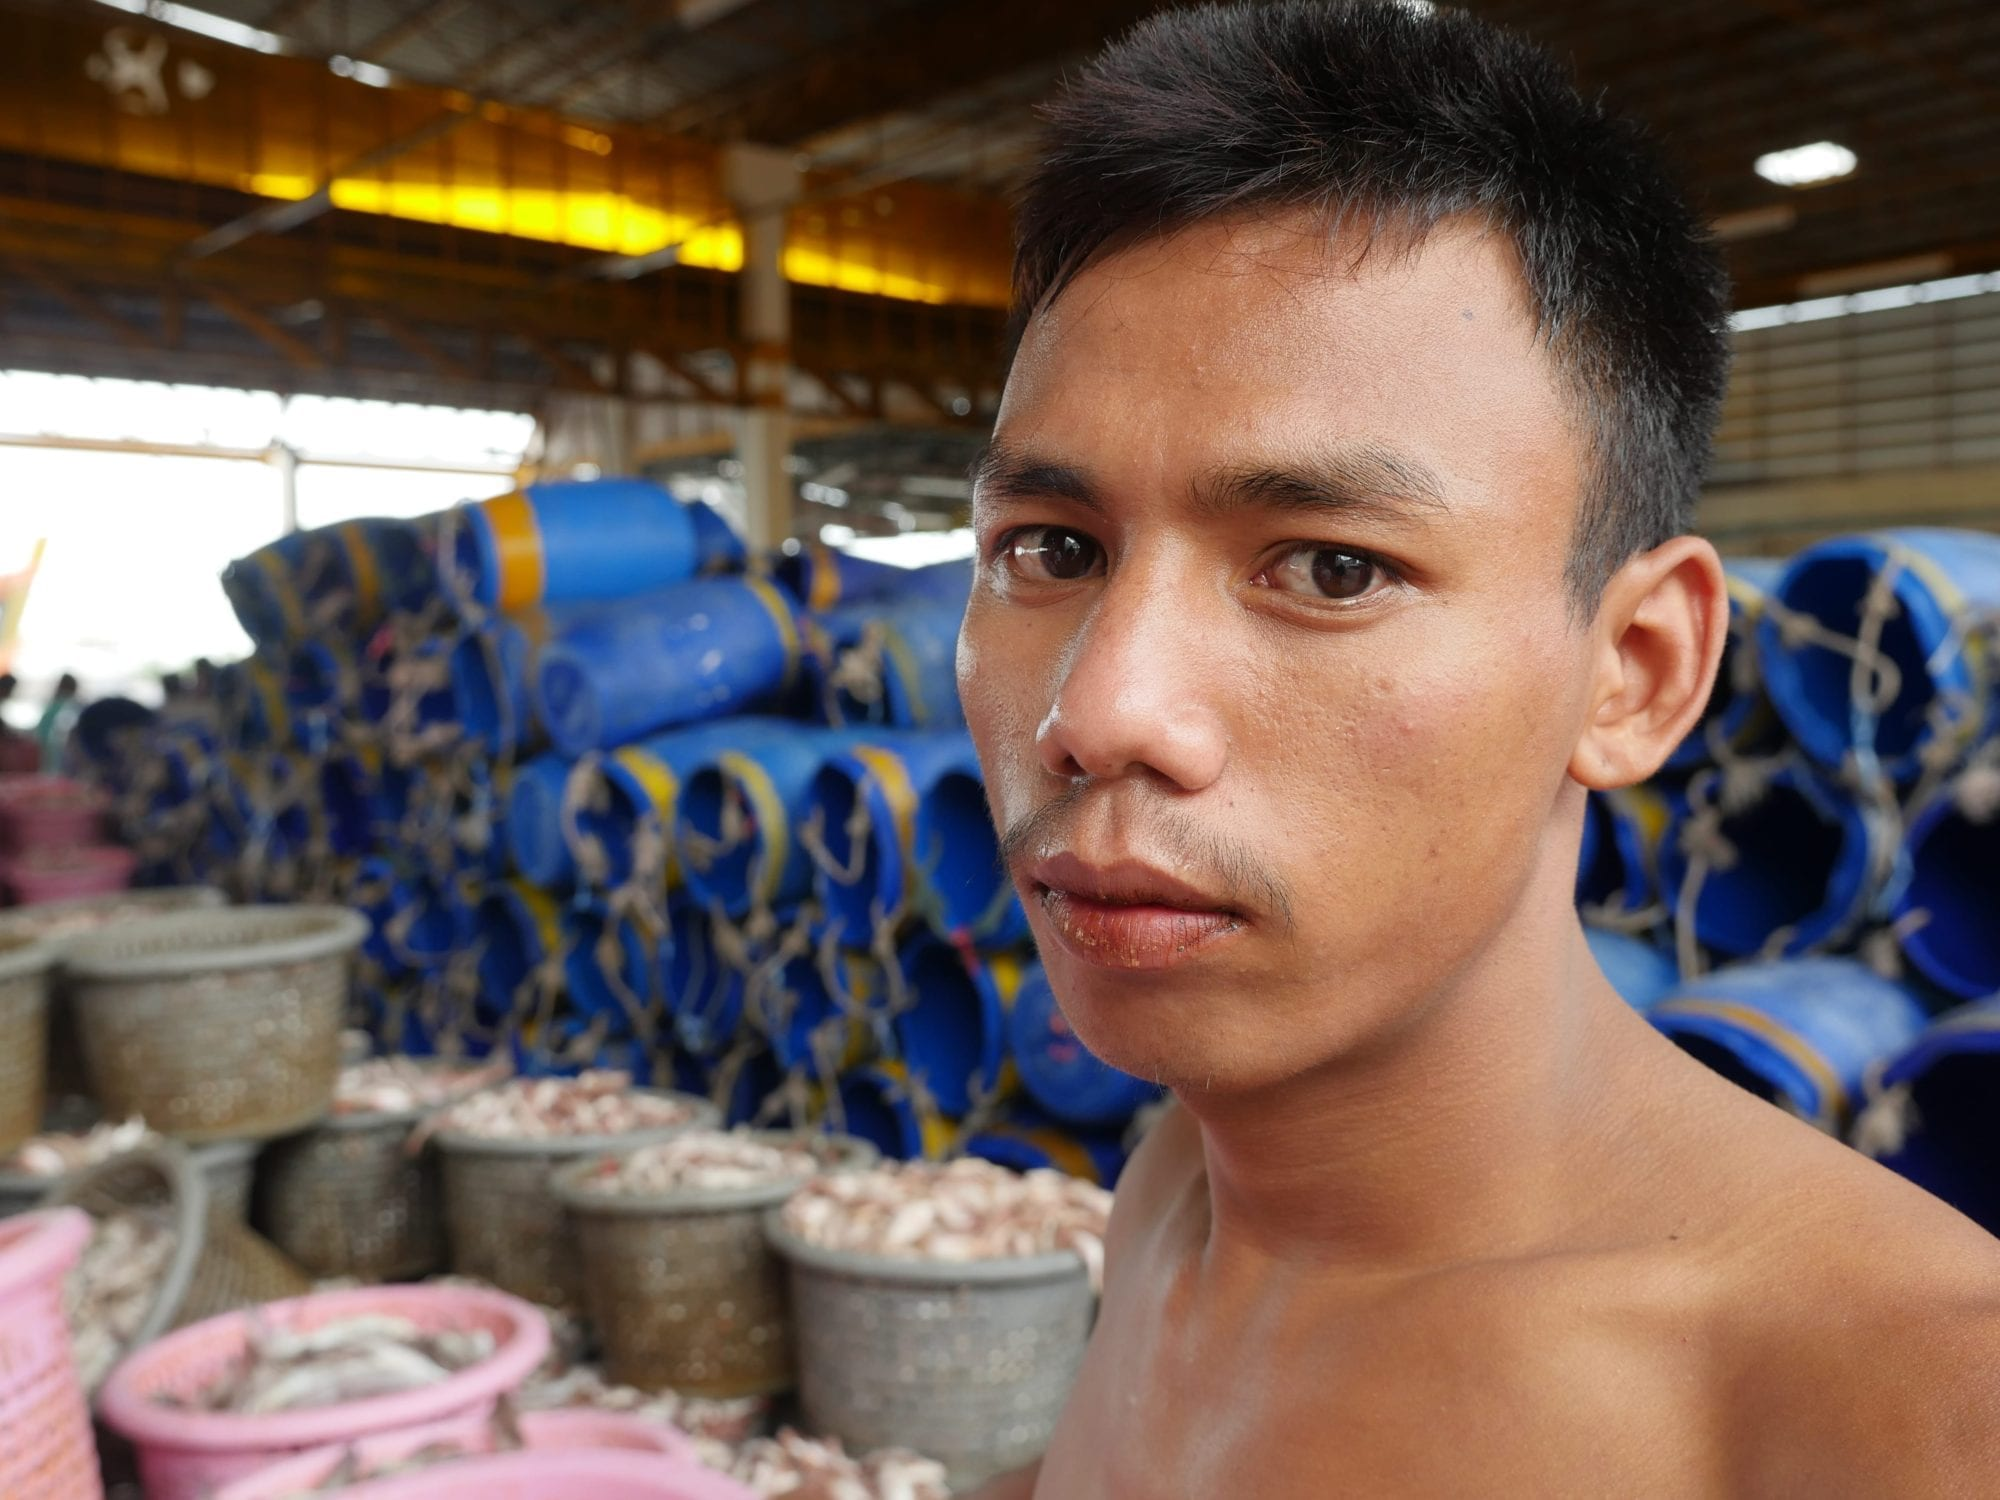 Thailand, migrant workers, traffickiing, Solidarity Center